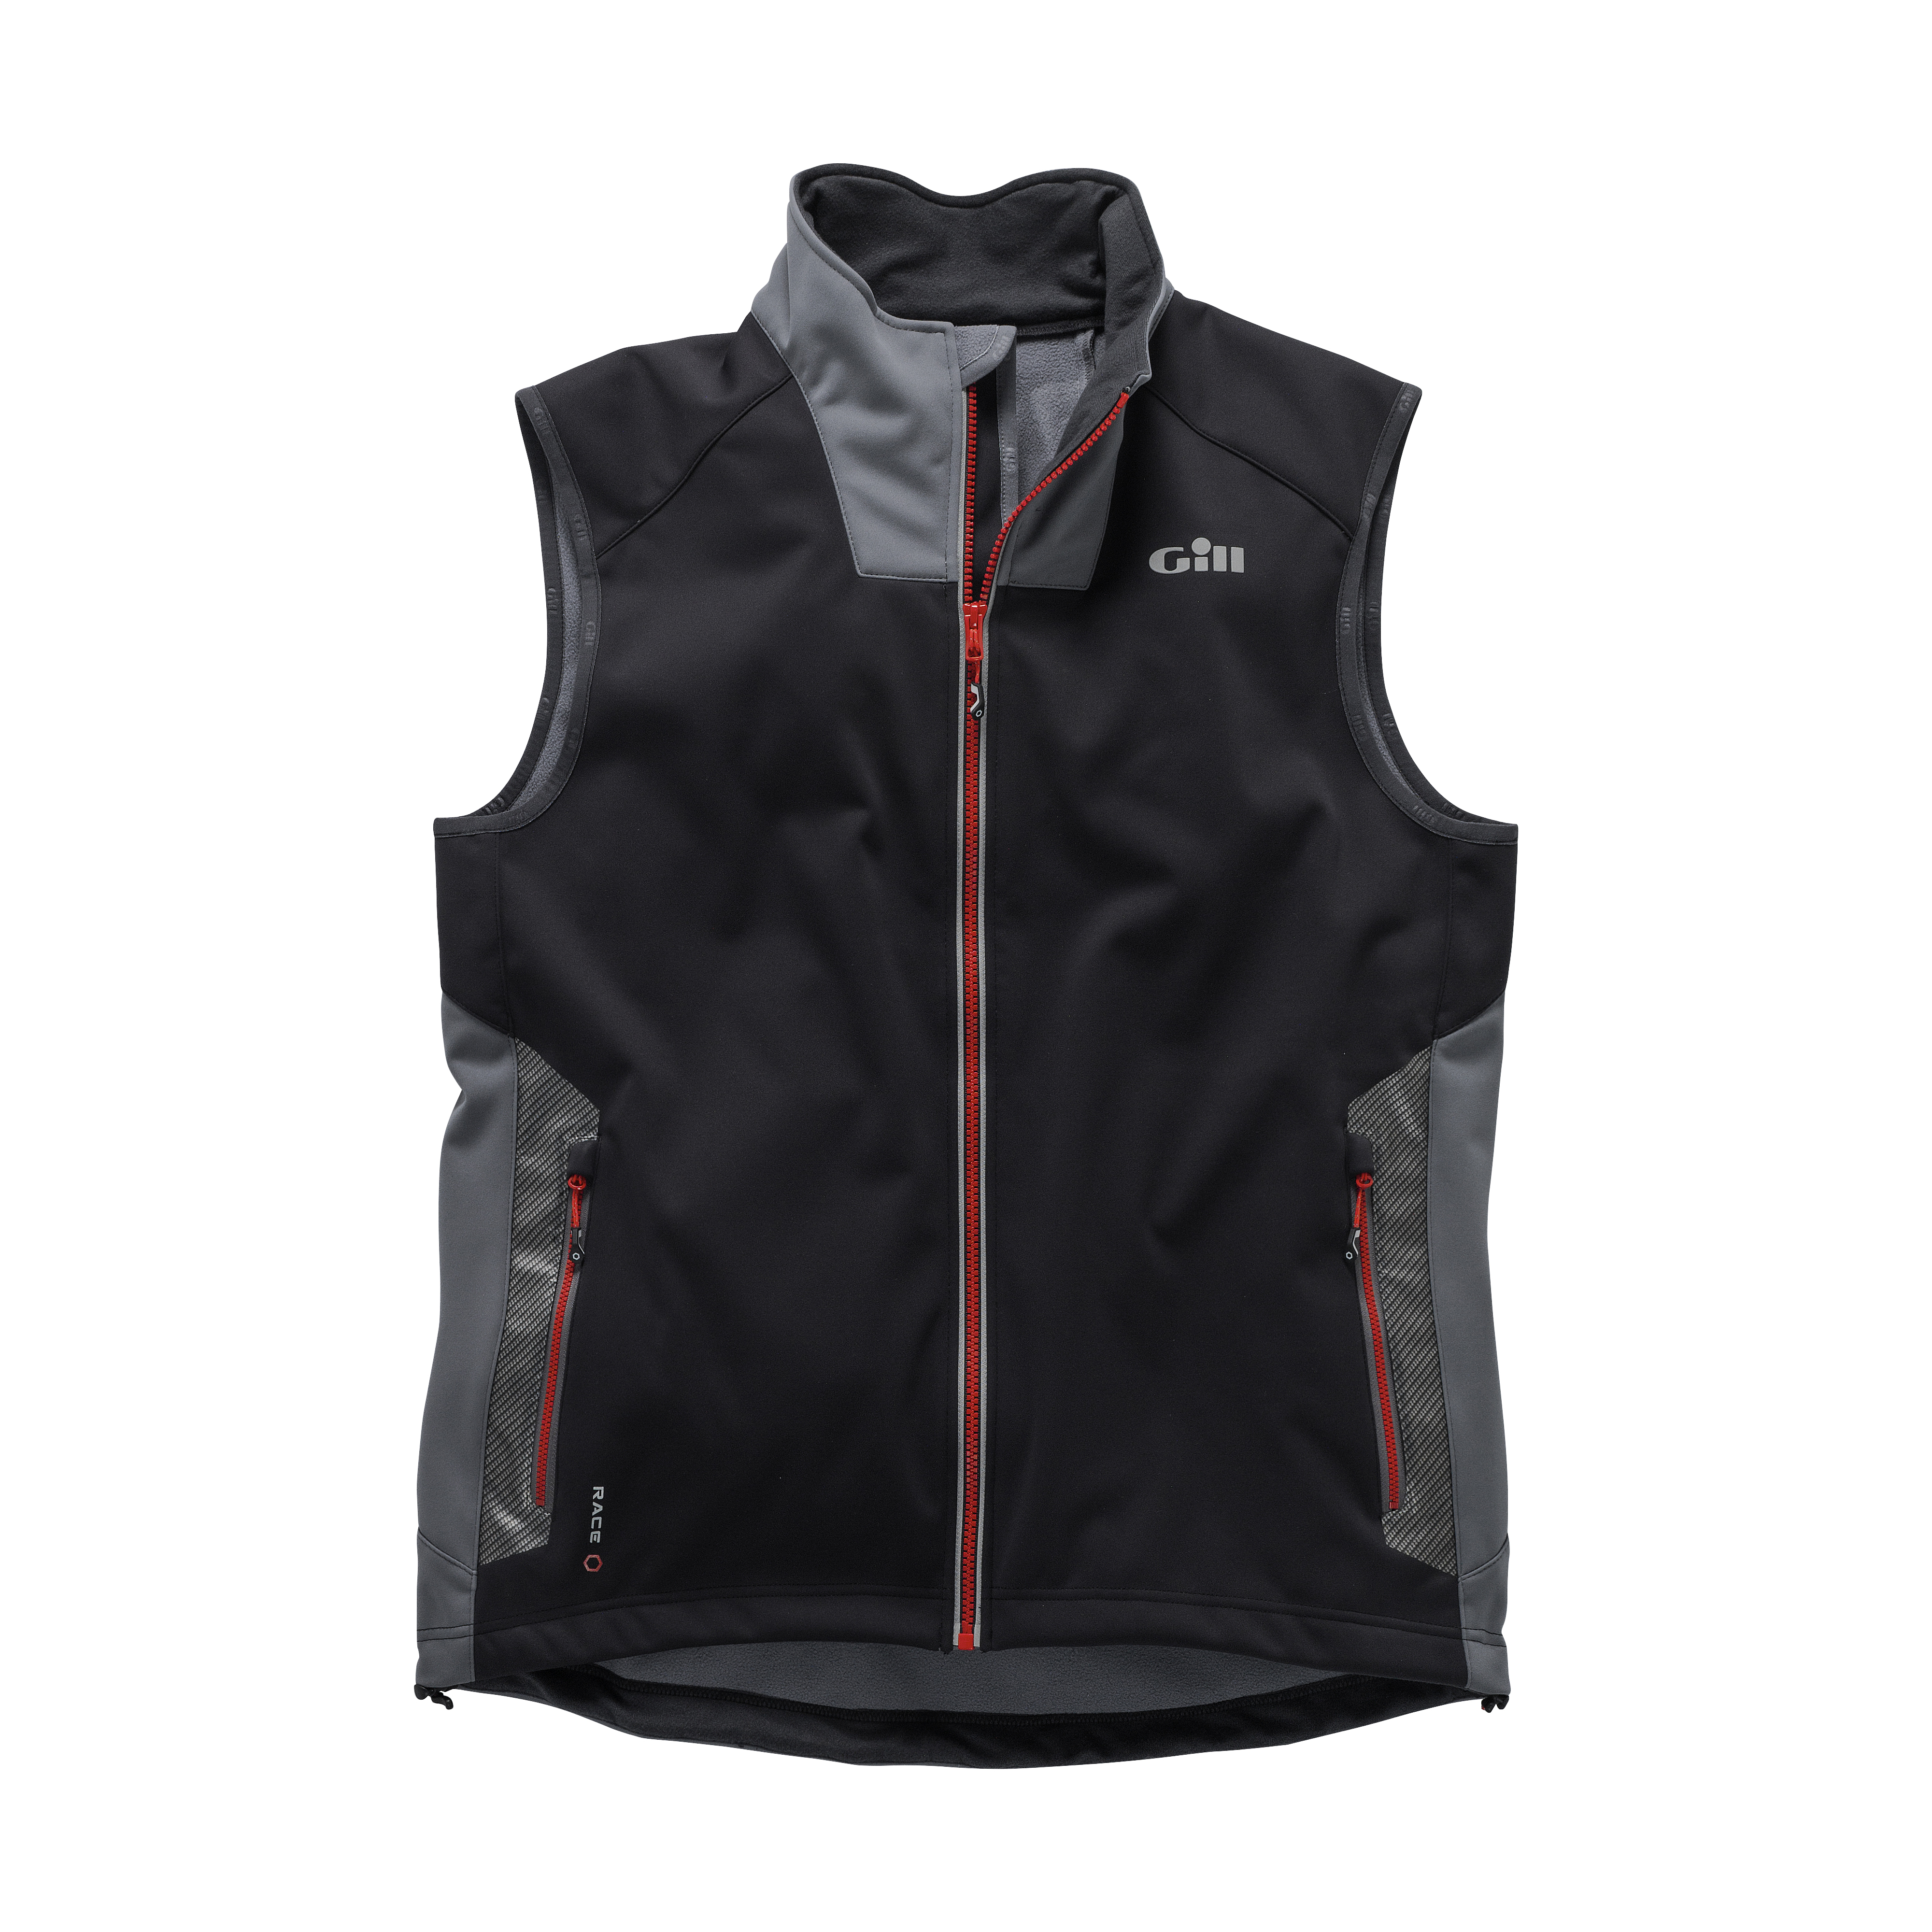 GILL RACE SOFTSHELL VEST (RS04)